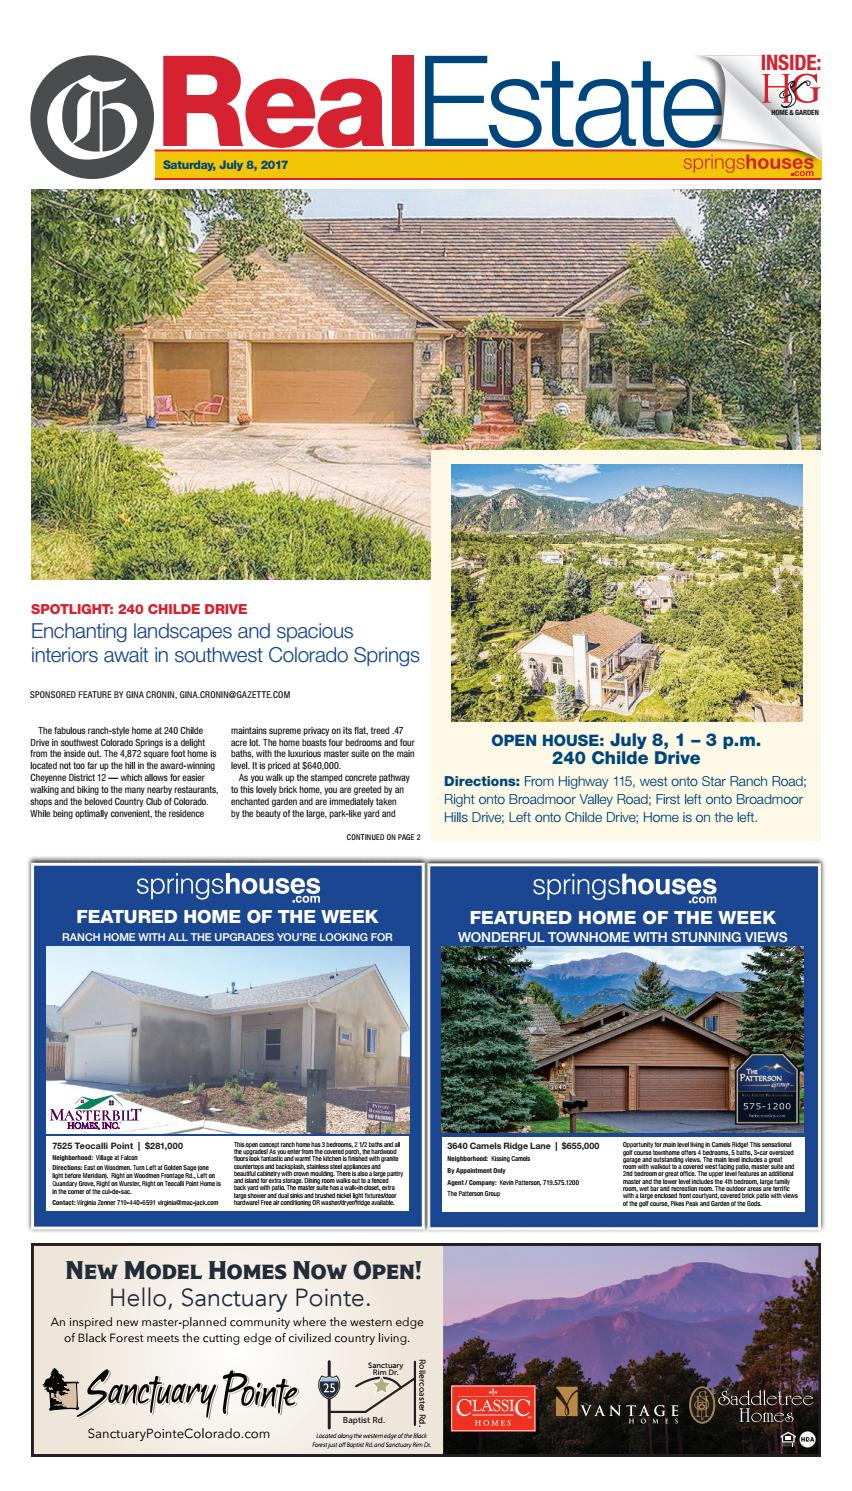 Real Estate 07/08/17Colorado Springs Gazette, Llc – Issuu With Wurster Ceramic Drip Garden Stools (View 25 of 25)